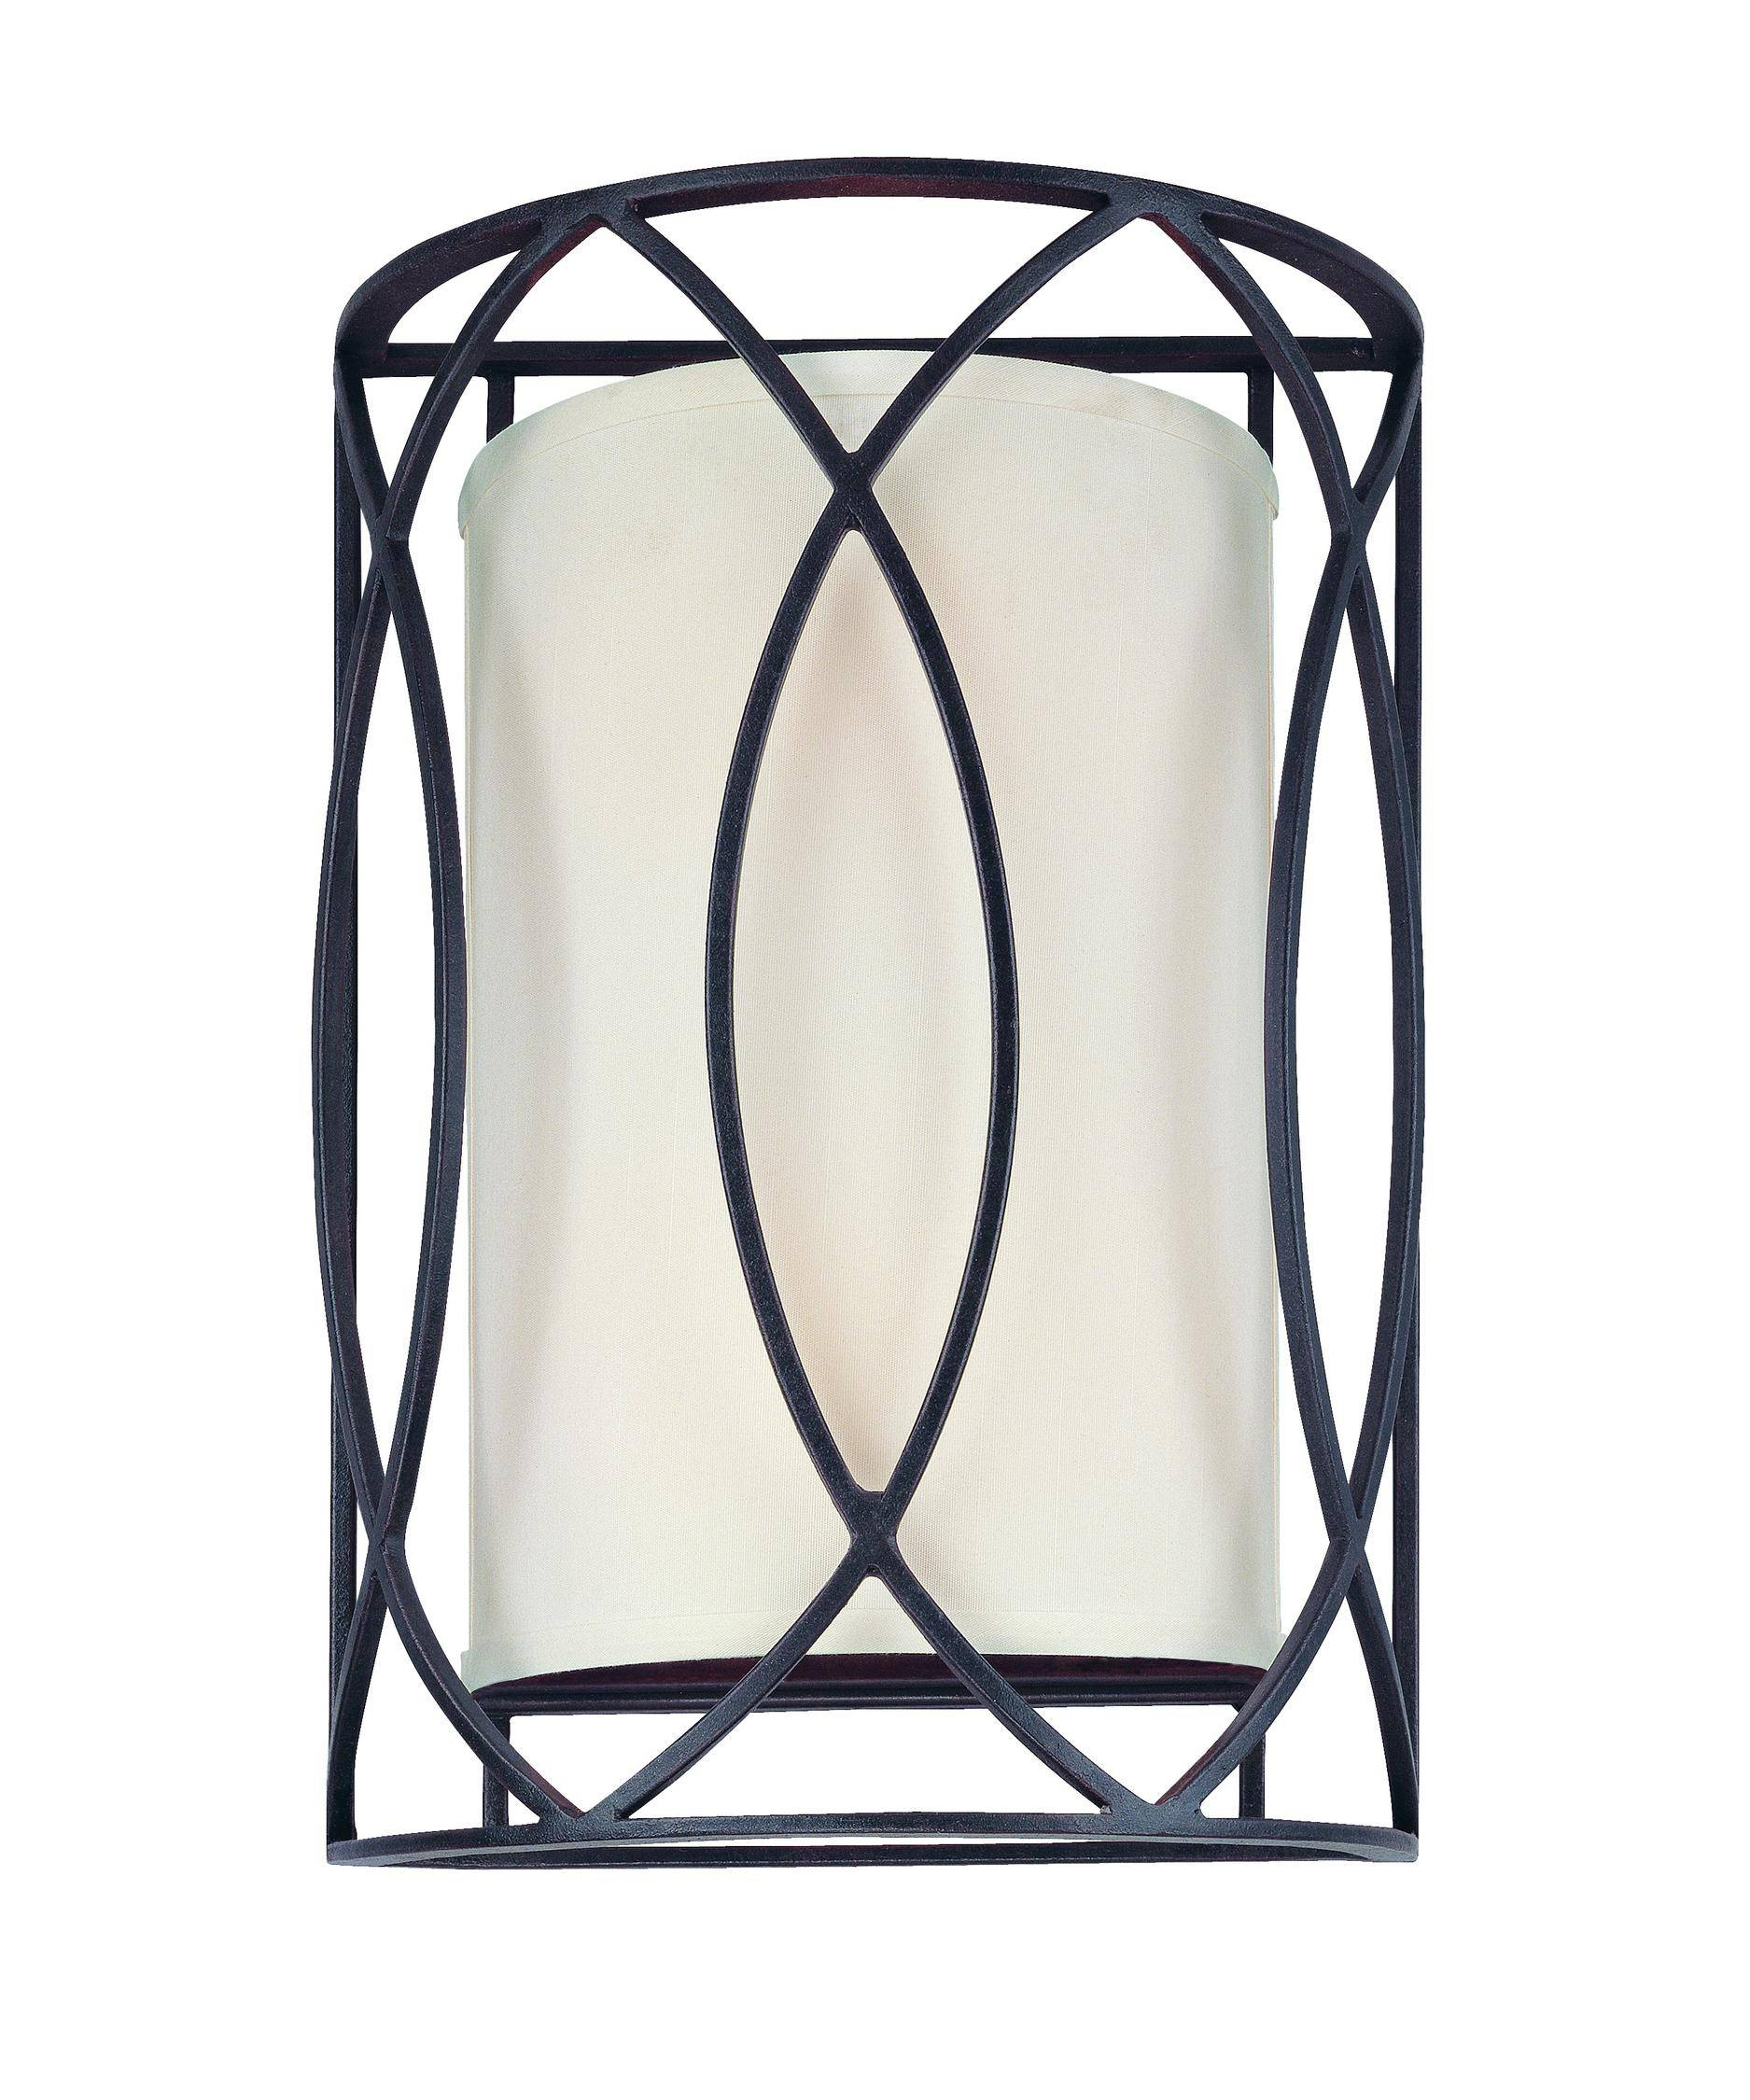 Troy Lighting B1289 Sausalito 10 Inch Wide Wall Sconce | Capitol In Sausalito Troy Lighting (View 2 of 15)